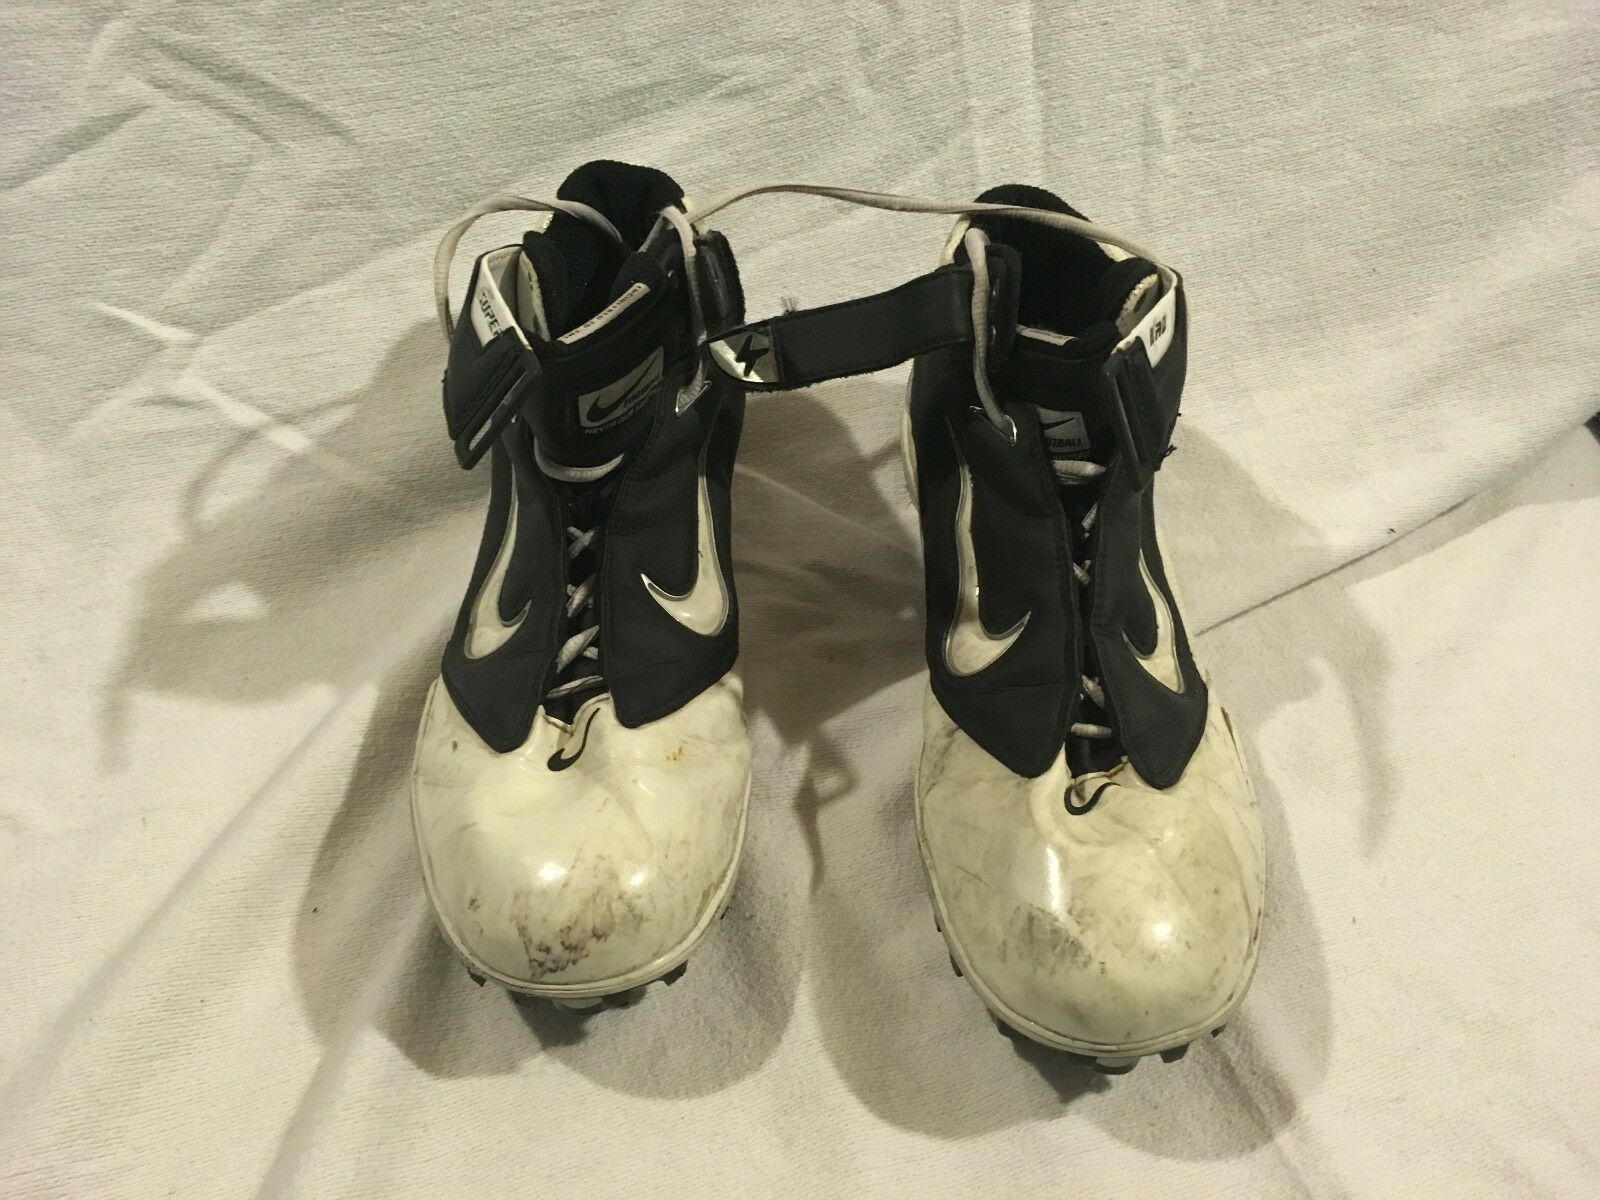 Mens Nike Air LT Superbad Black White 11.5 Lace Up Athletic Sports Cleats Cheap and beautiful fashion